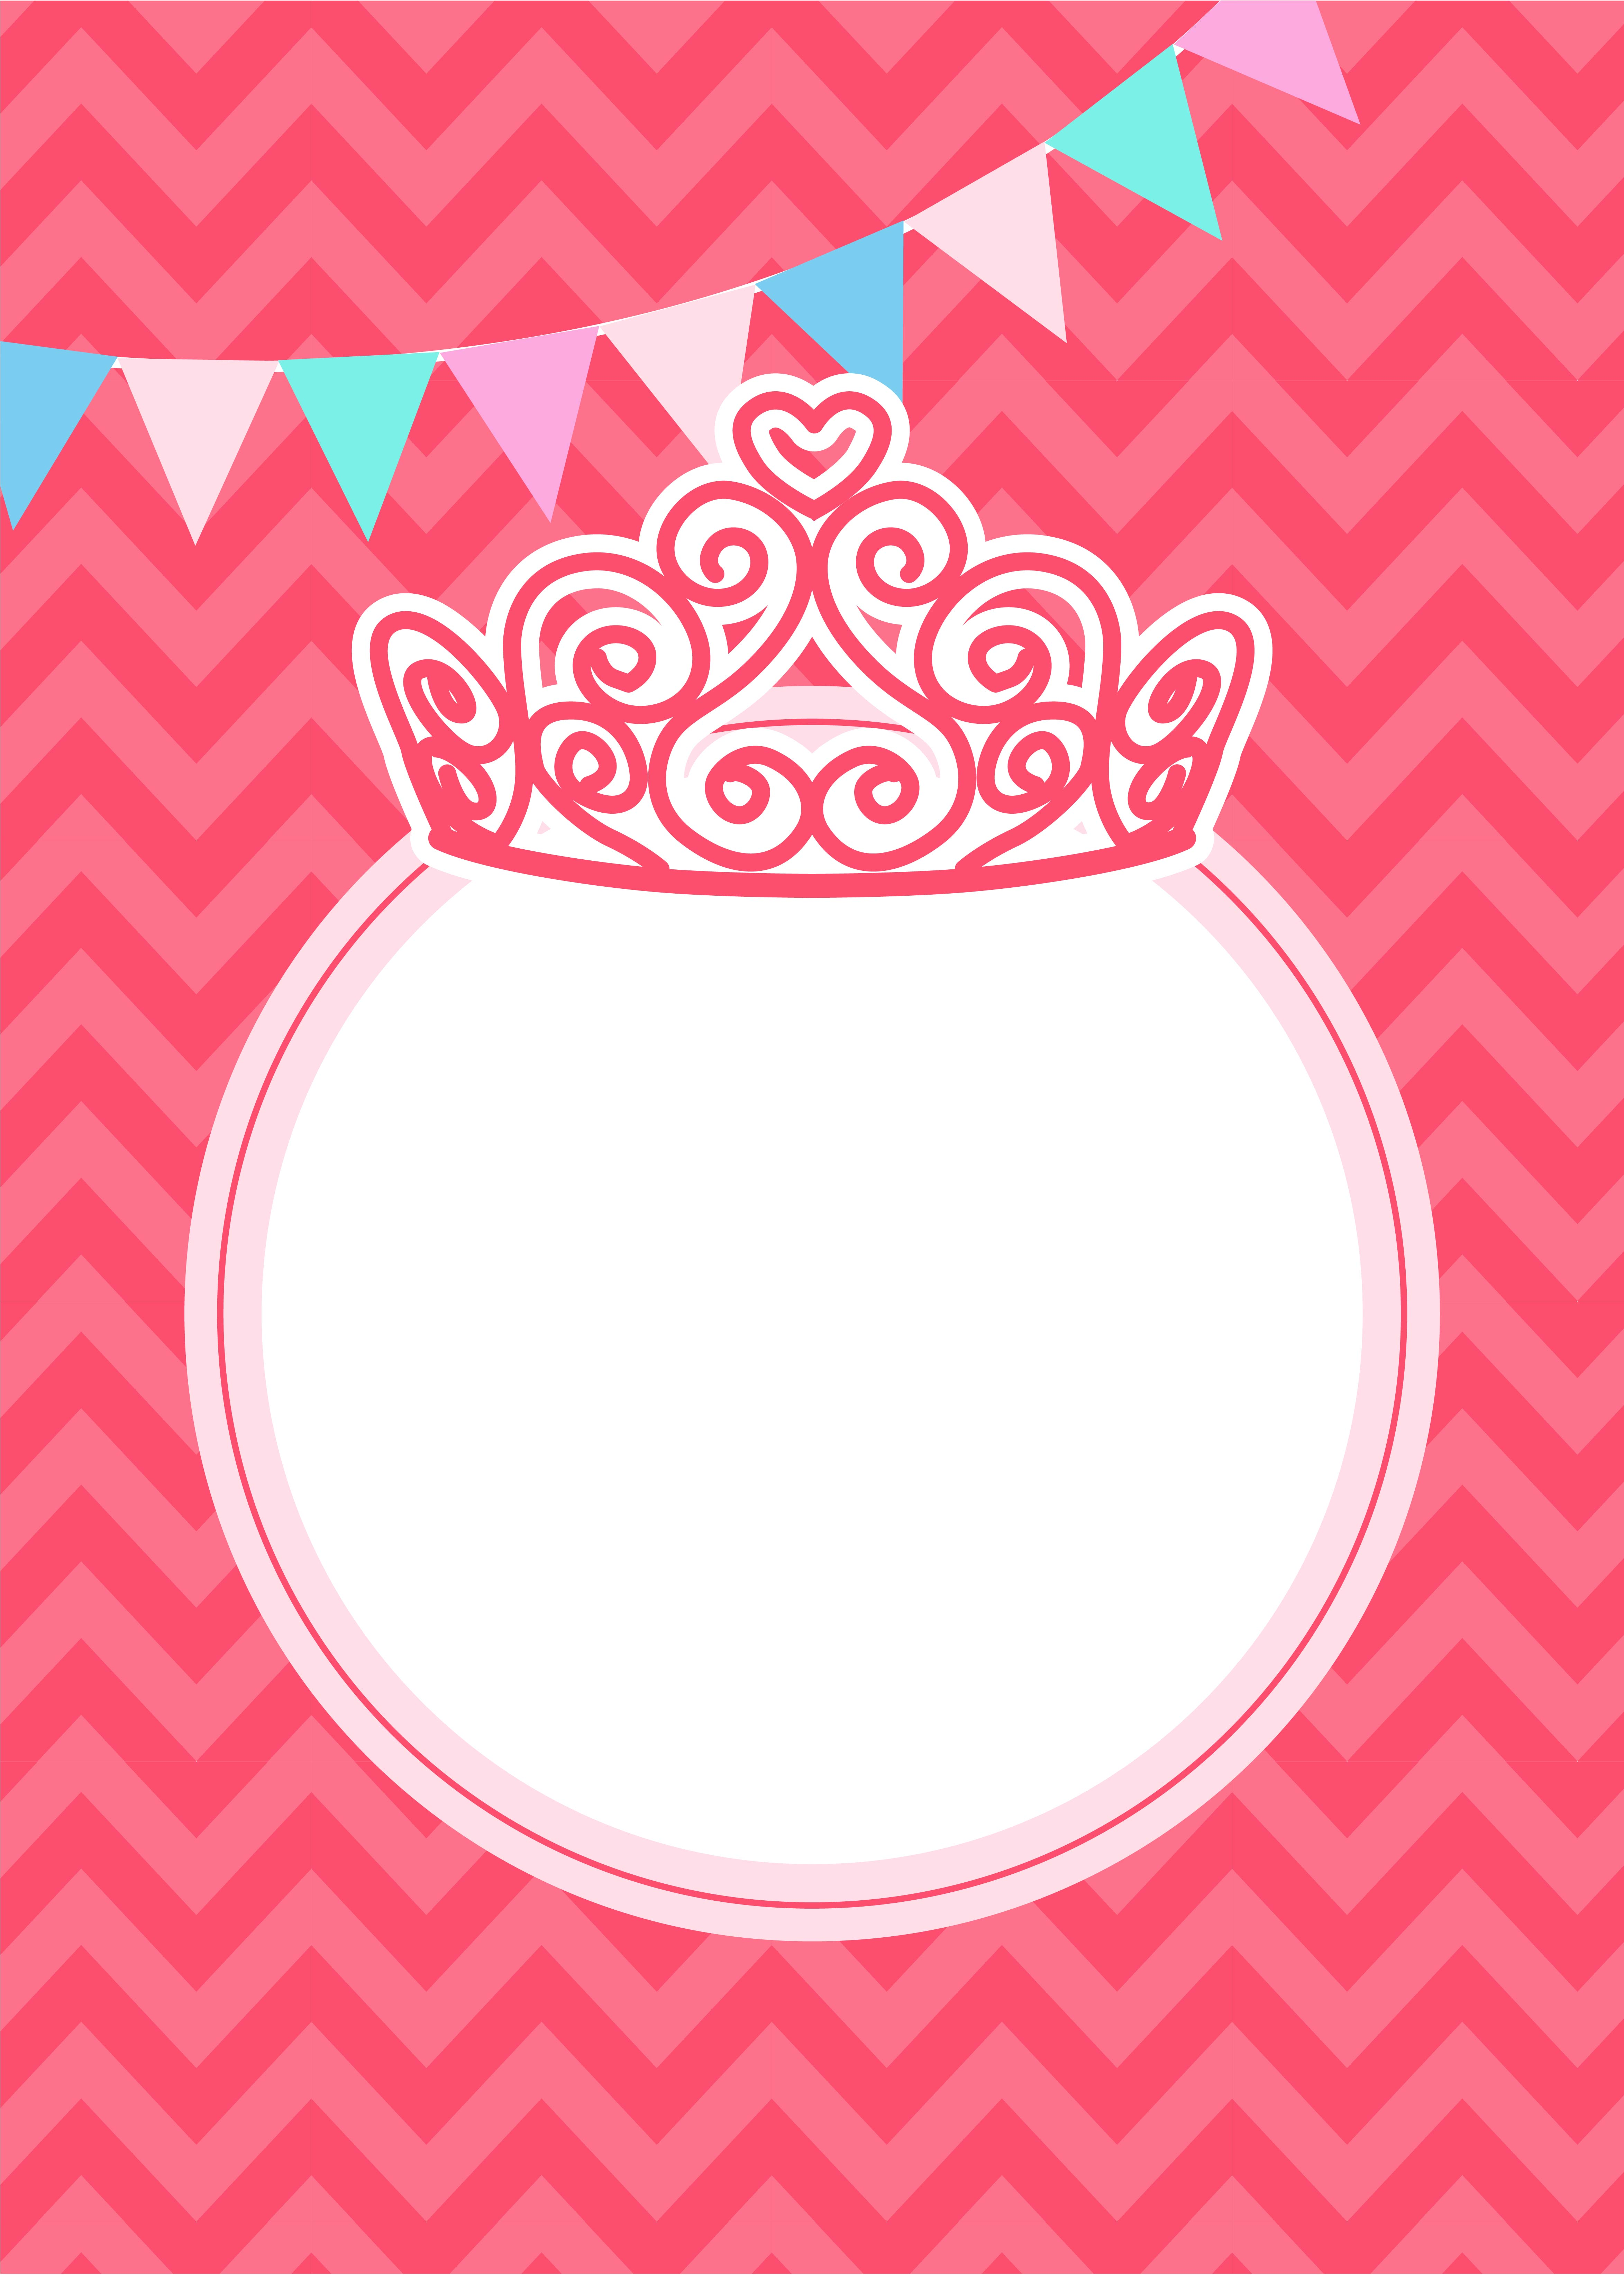 Fall Baby Animal Wallpaper Vector Pink Background Cartoon Girl Birthday Party Pink